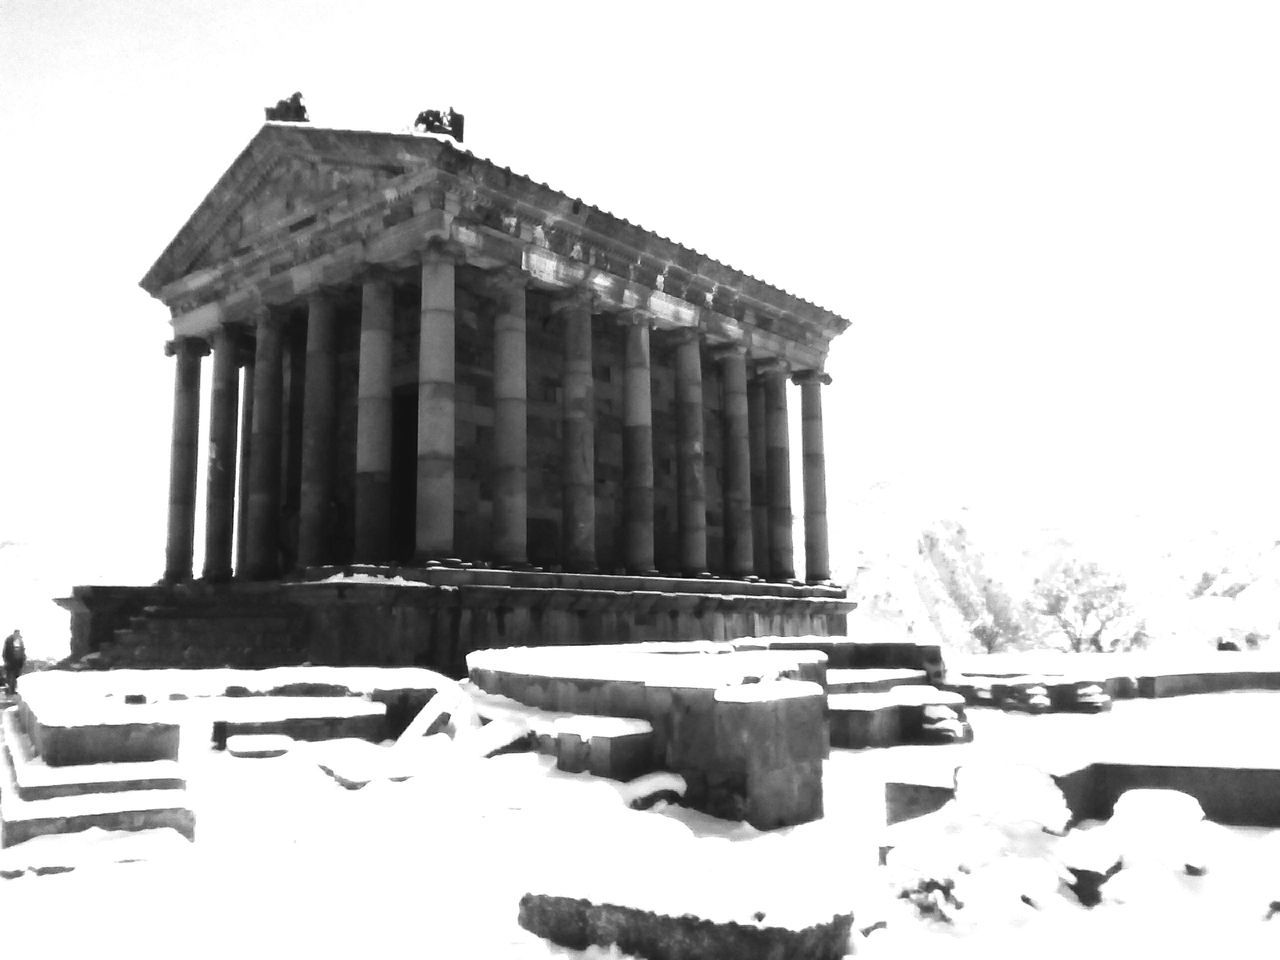 Architecture Garni Geghart Landscape Wonderful View Outdoors Nature 😄😄 Springtime No People 😊😊😊 Smile And Be Happy😇 Traveling In Armenia Travel Photography Spring With Snow